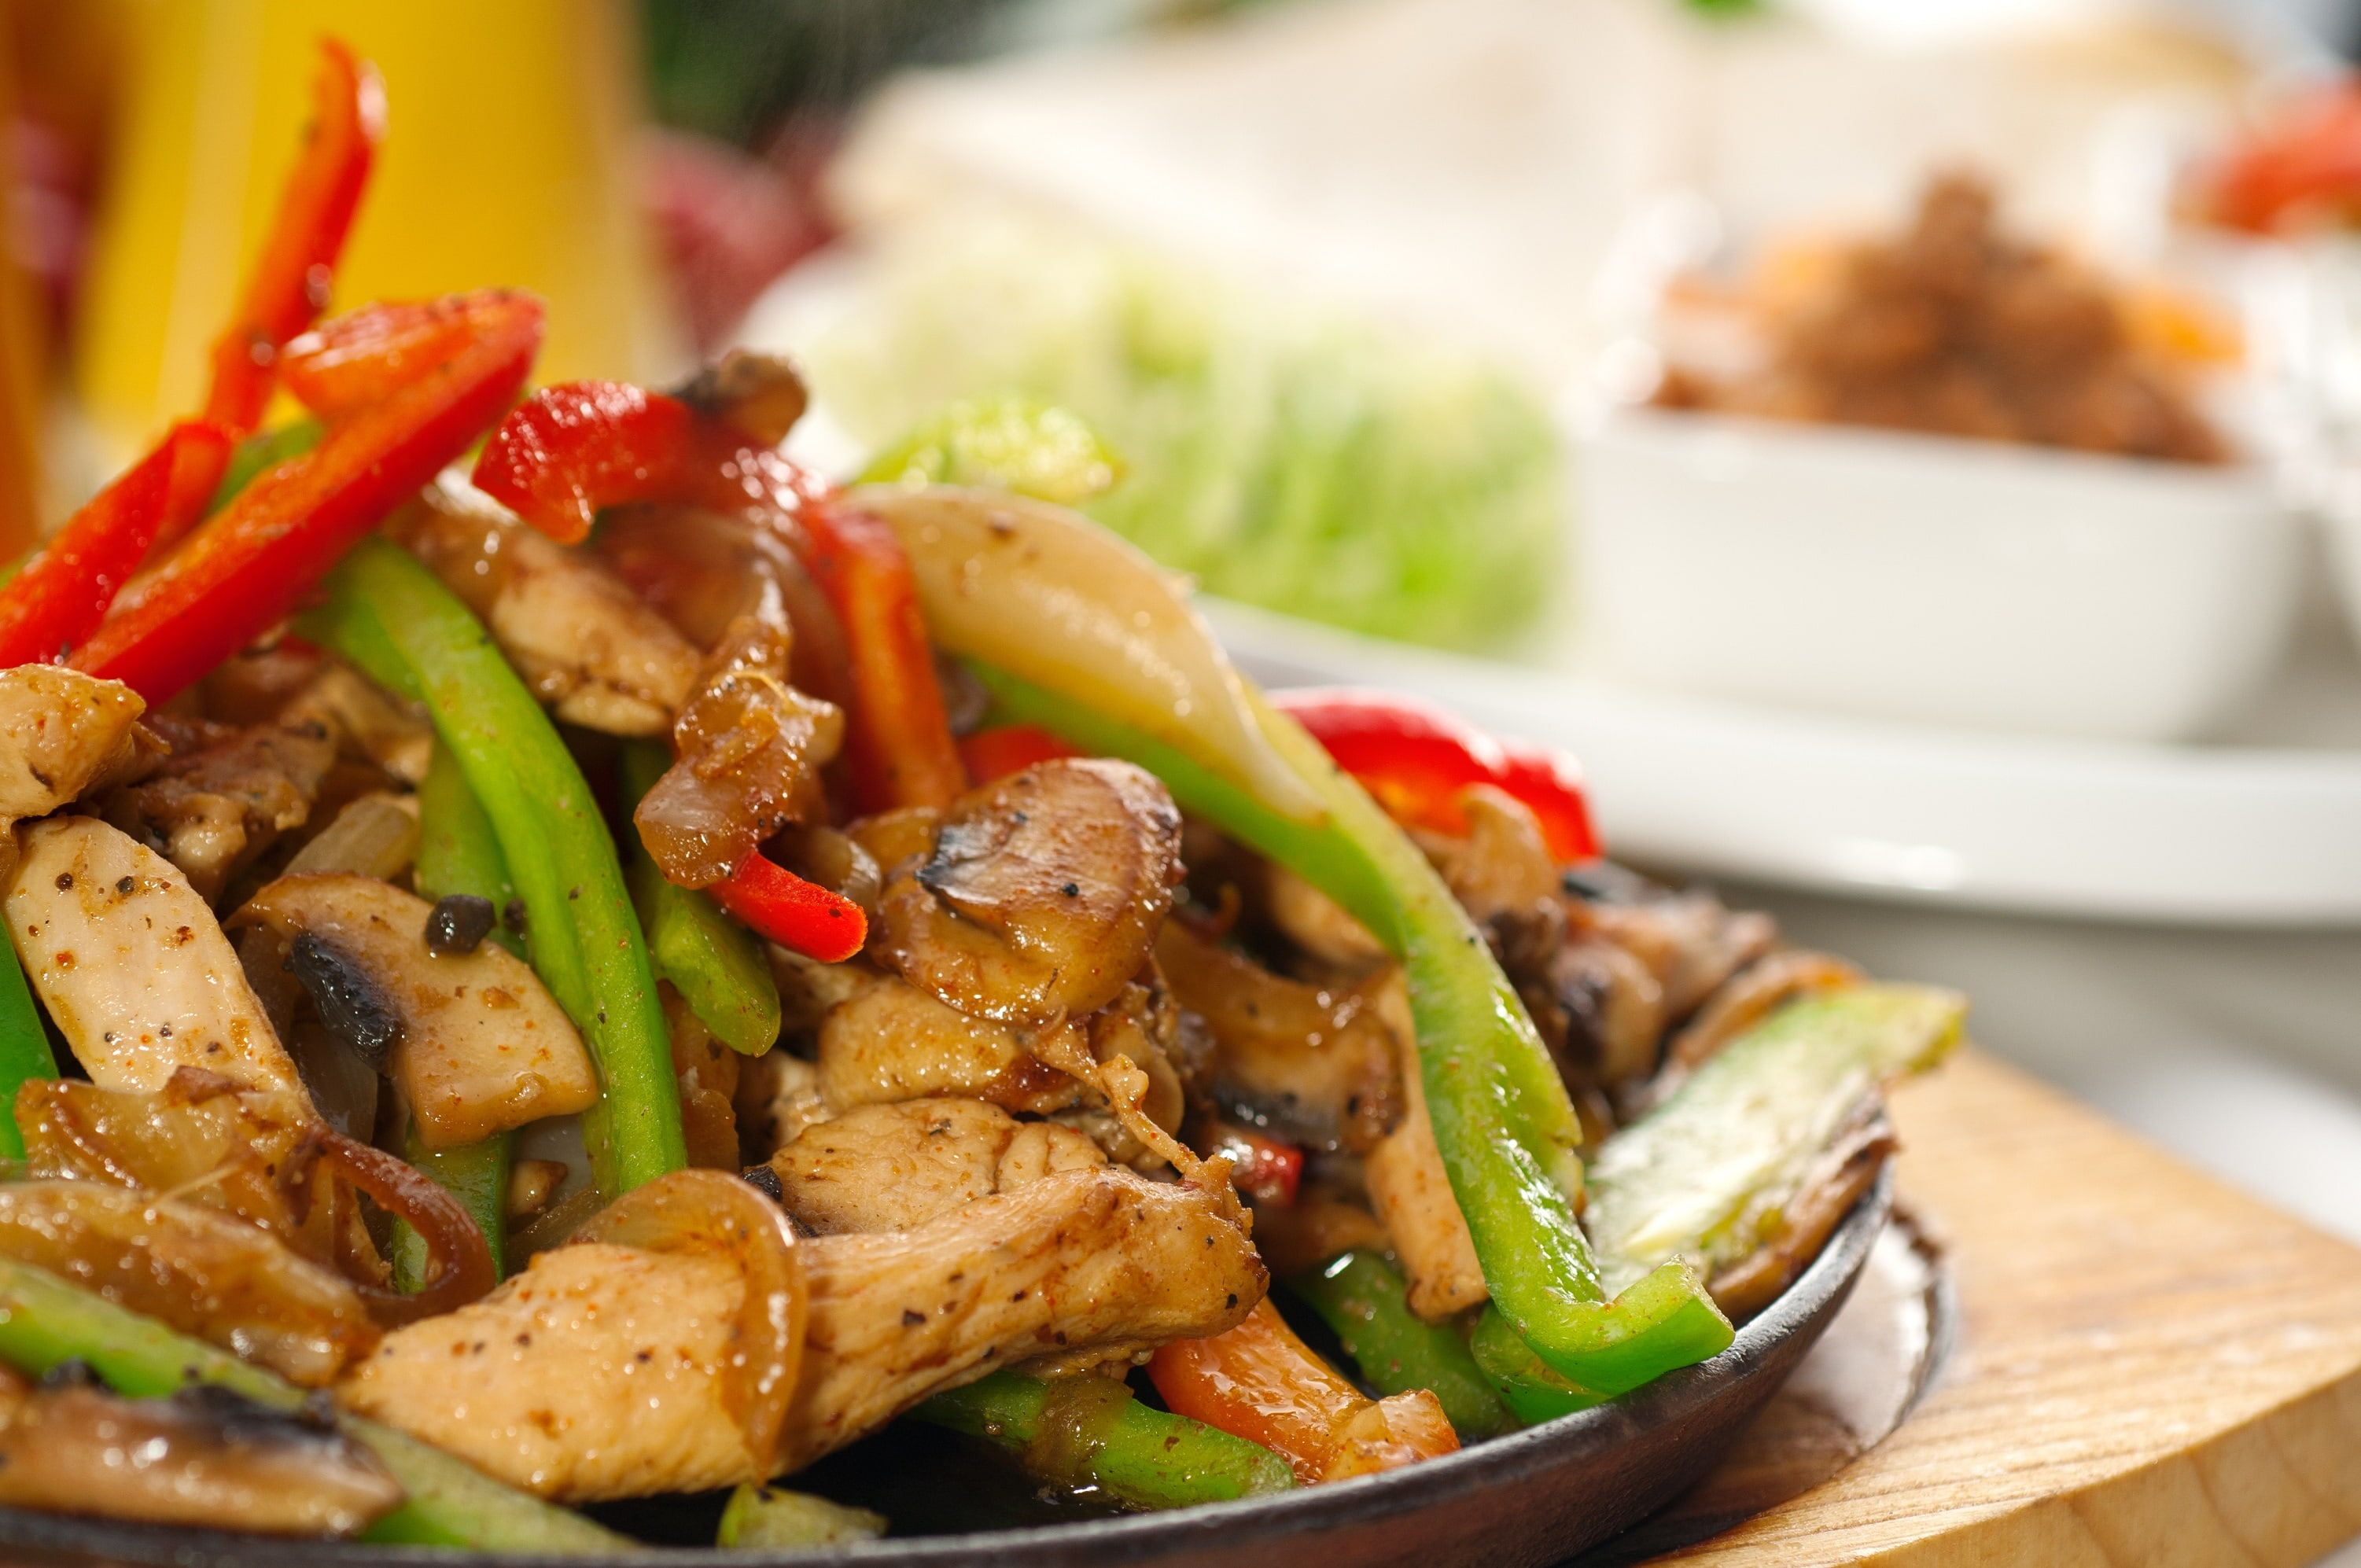 Chicken fajita with green peppers and onions